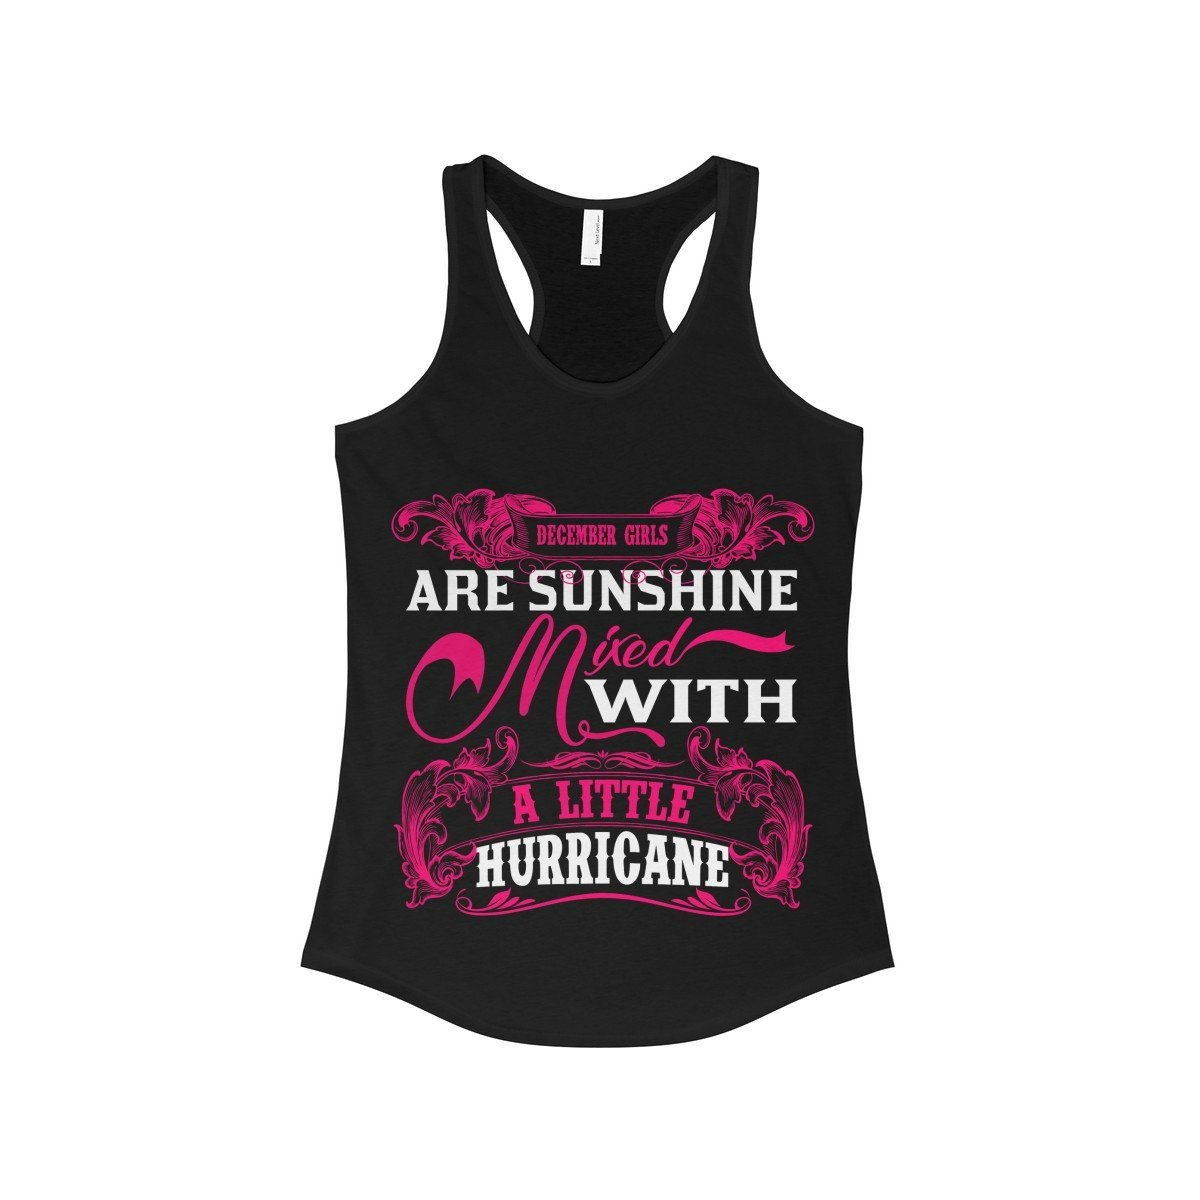 FavoryStore December Girls Are Sunshine Mixed With a Little Hurricane Tank Top